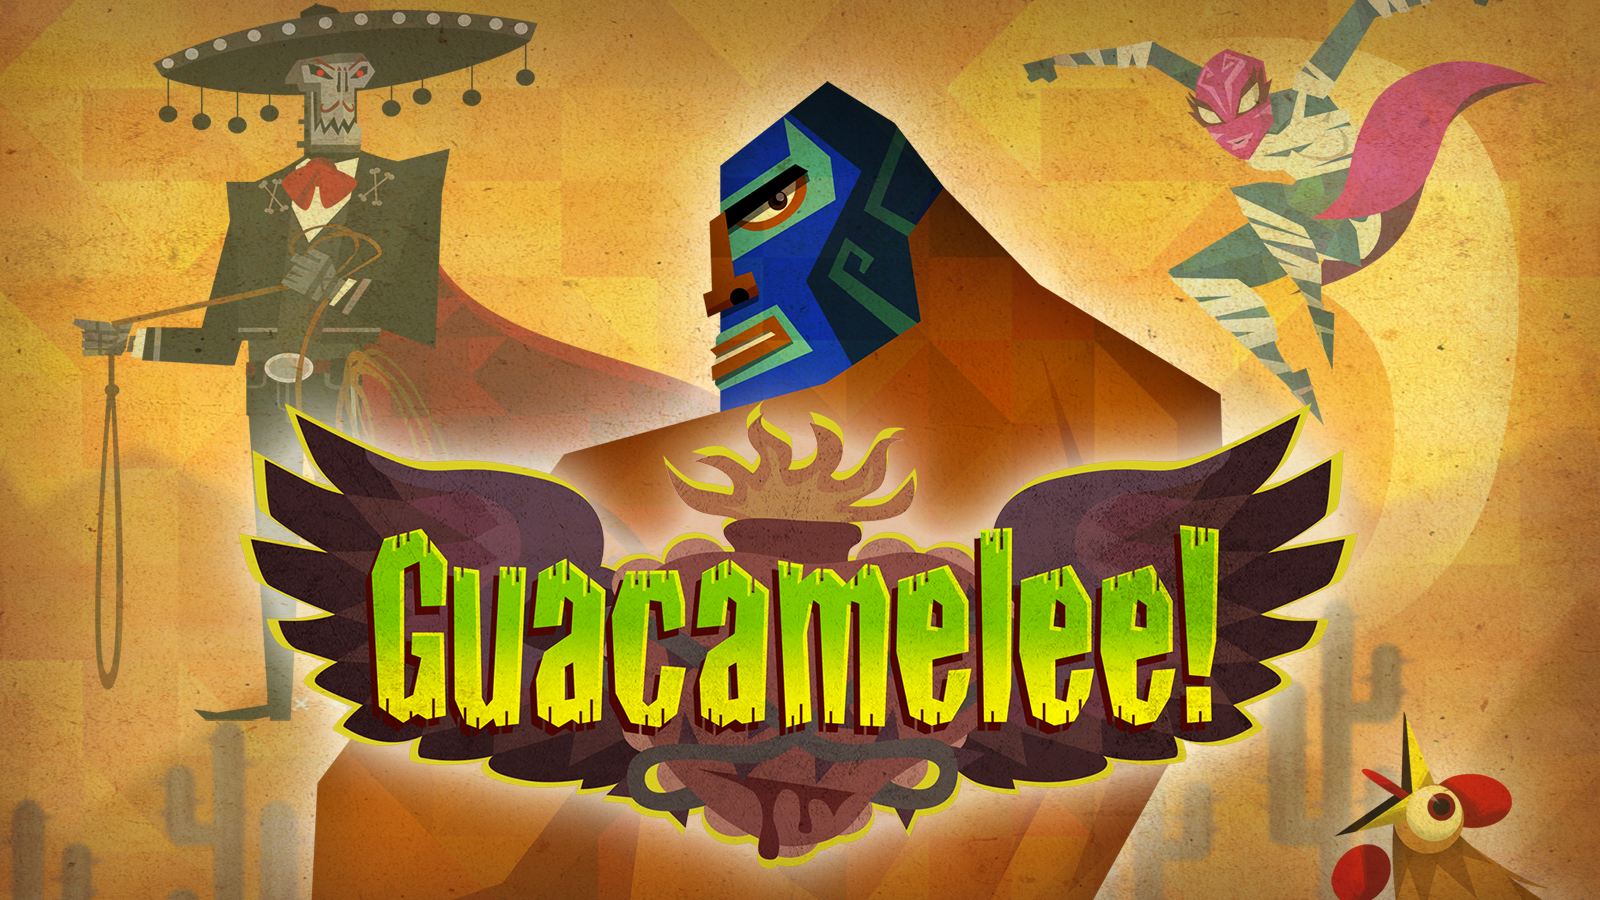 Guacamelee HD Wallpapers and Background Images   stmednet 1600x900